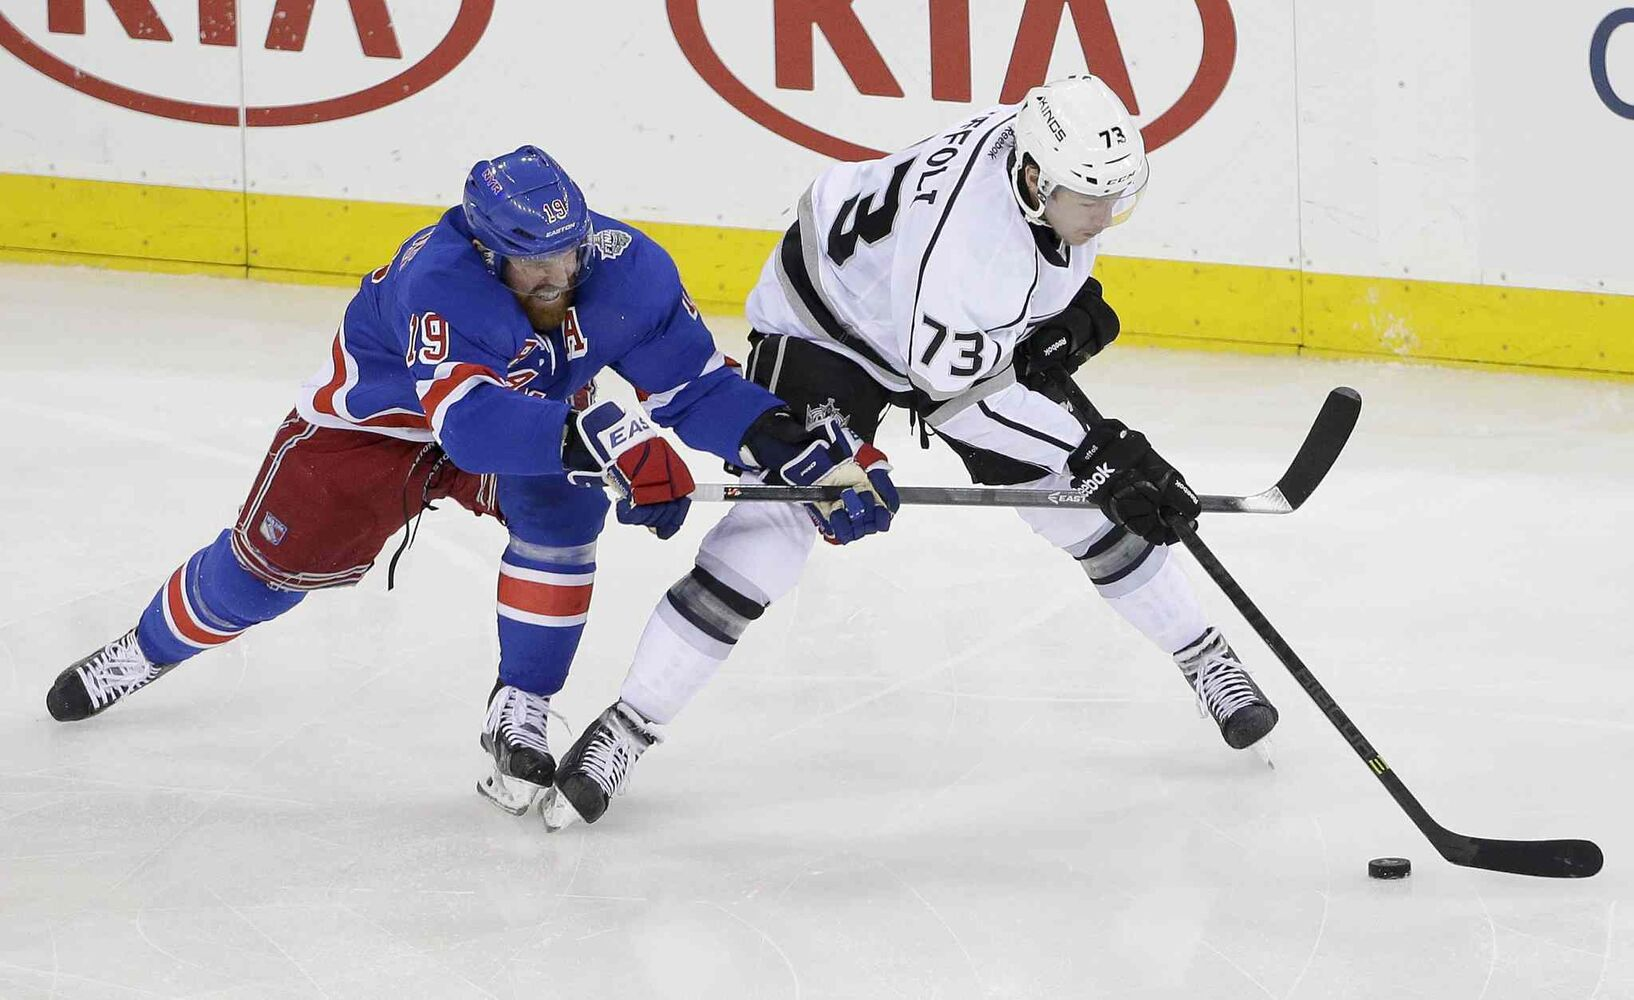 New York Rangers' centre Brad Richards (19) vies for the puck against Los Angeles Kings' centre Tyler Toffoli (73) in the first period of Wednesday's game. (Frank Franklin II / The Associated Press)